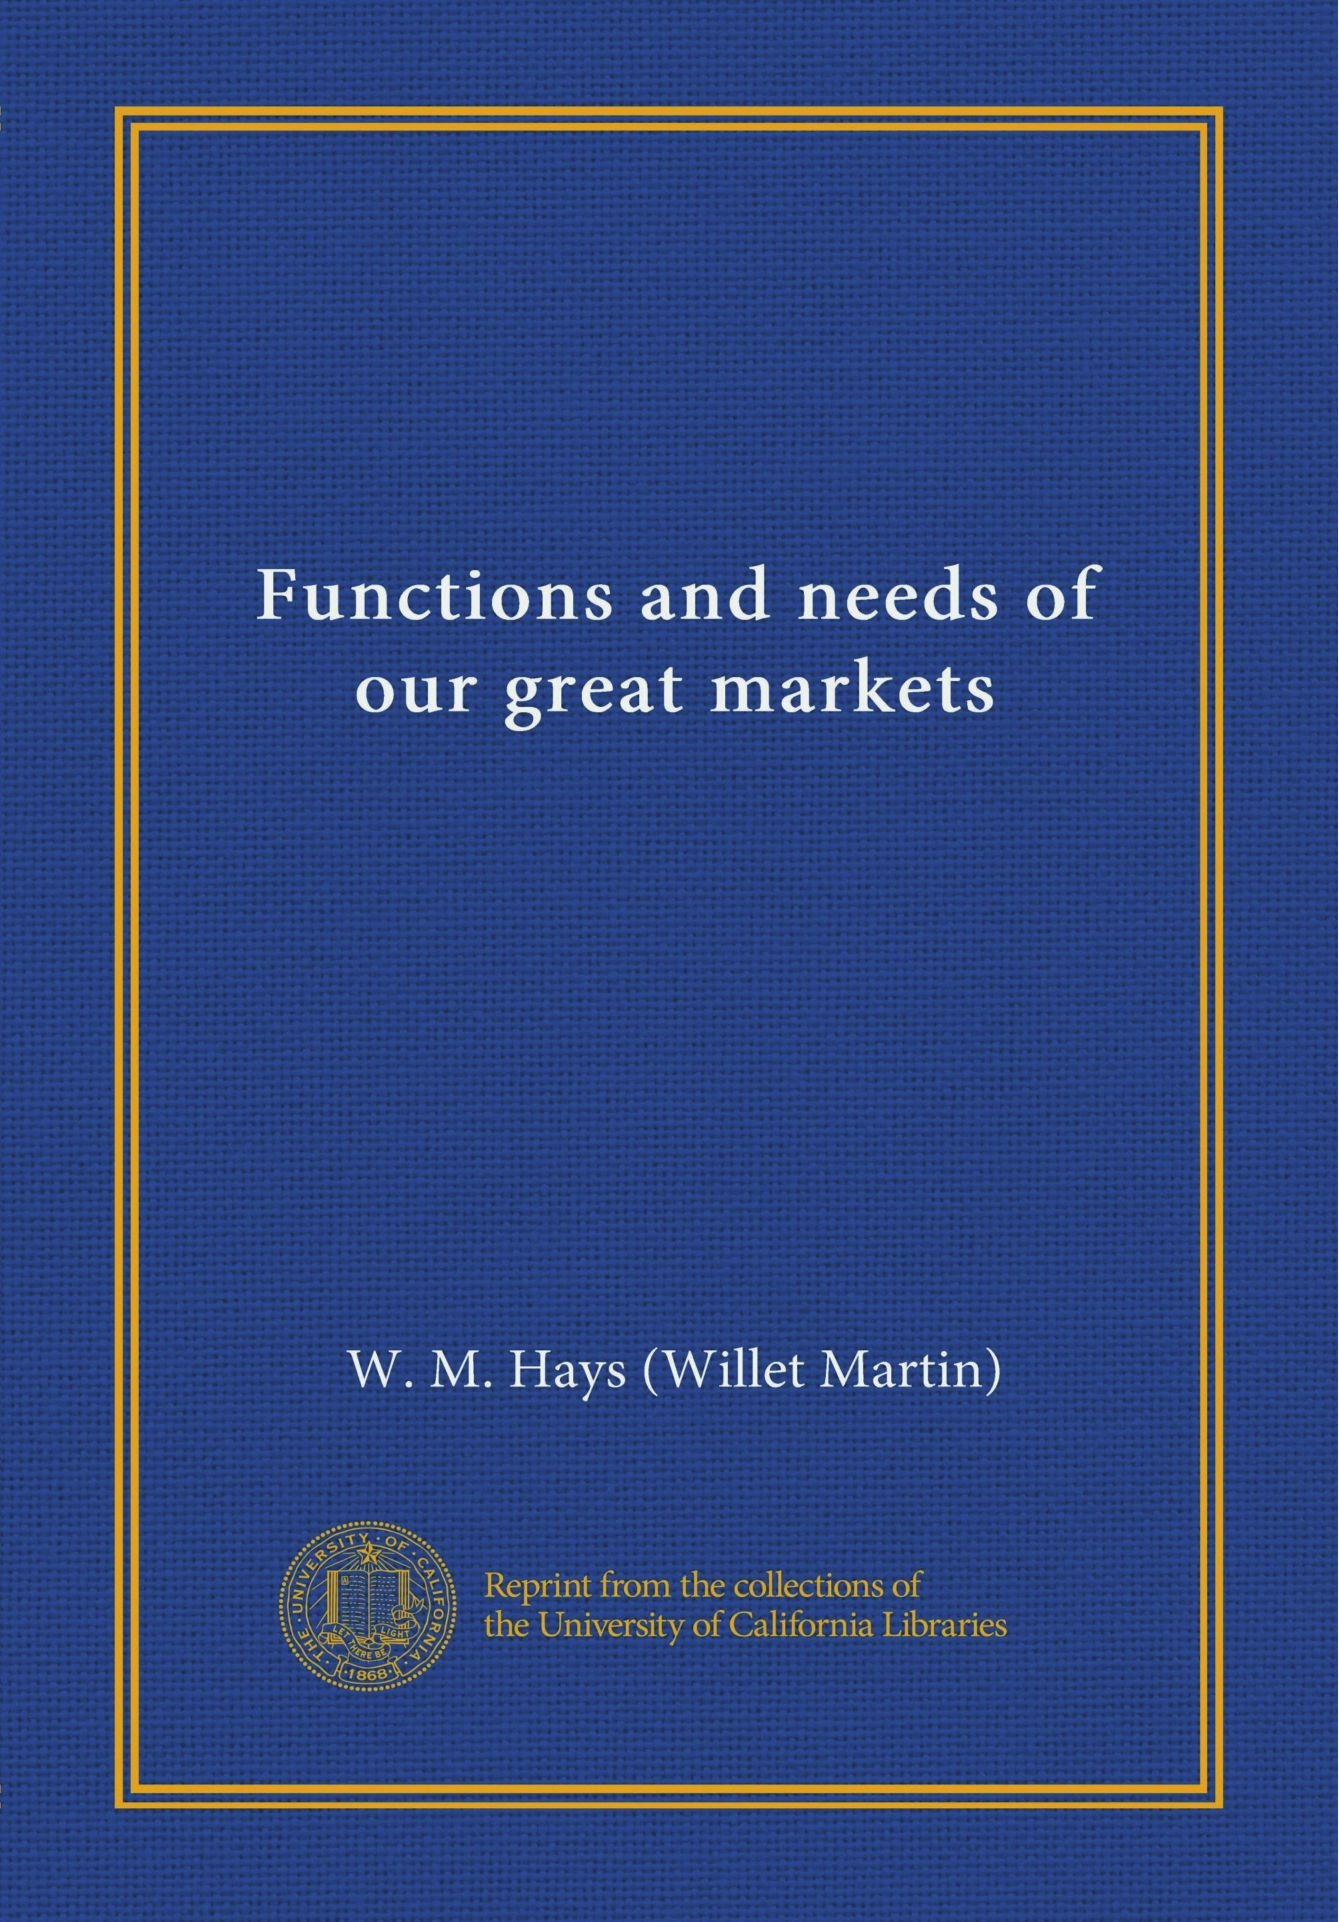 Download Functions and needs of our great markets PDF